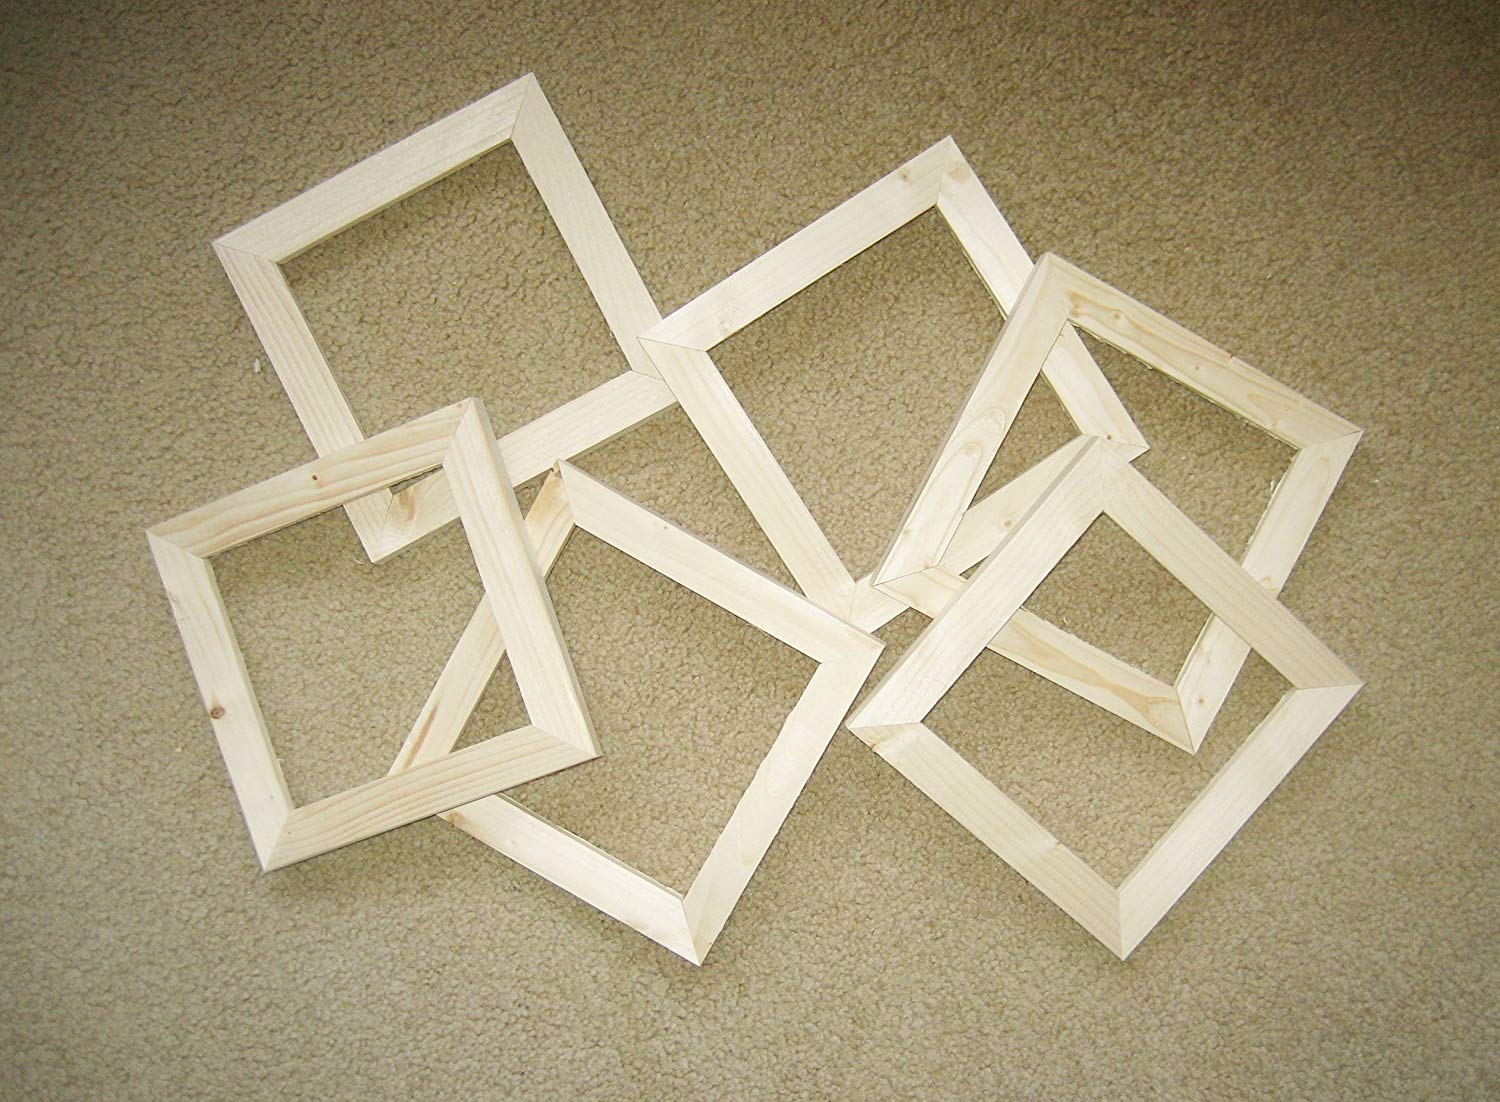 6 unfinished 6x6 rough cut wood picture frames